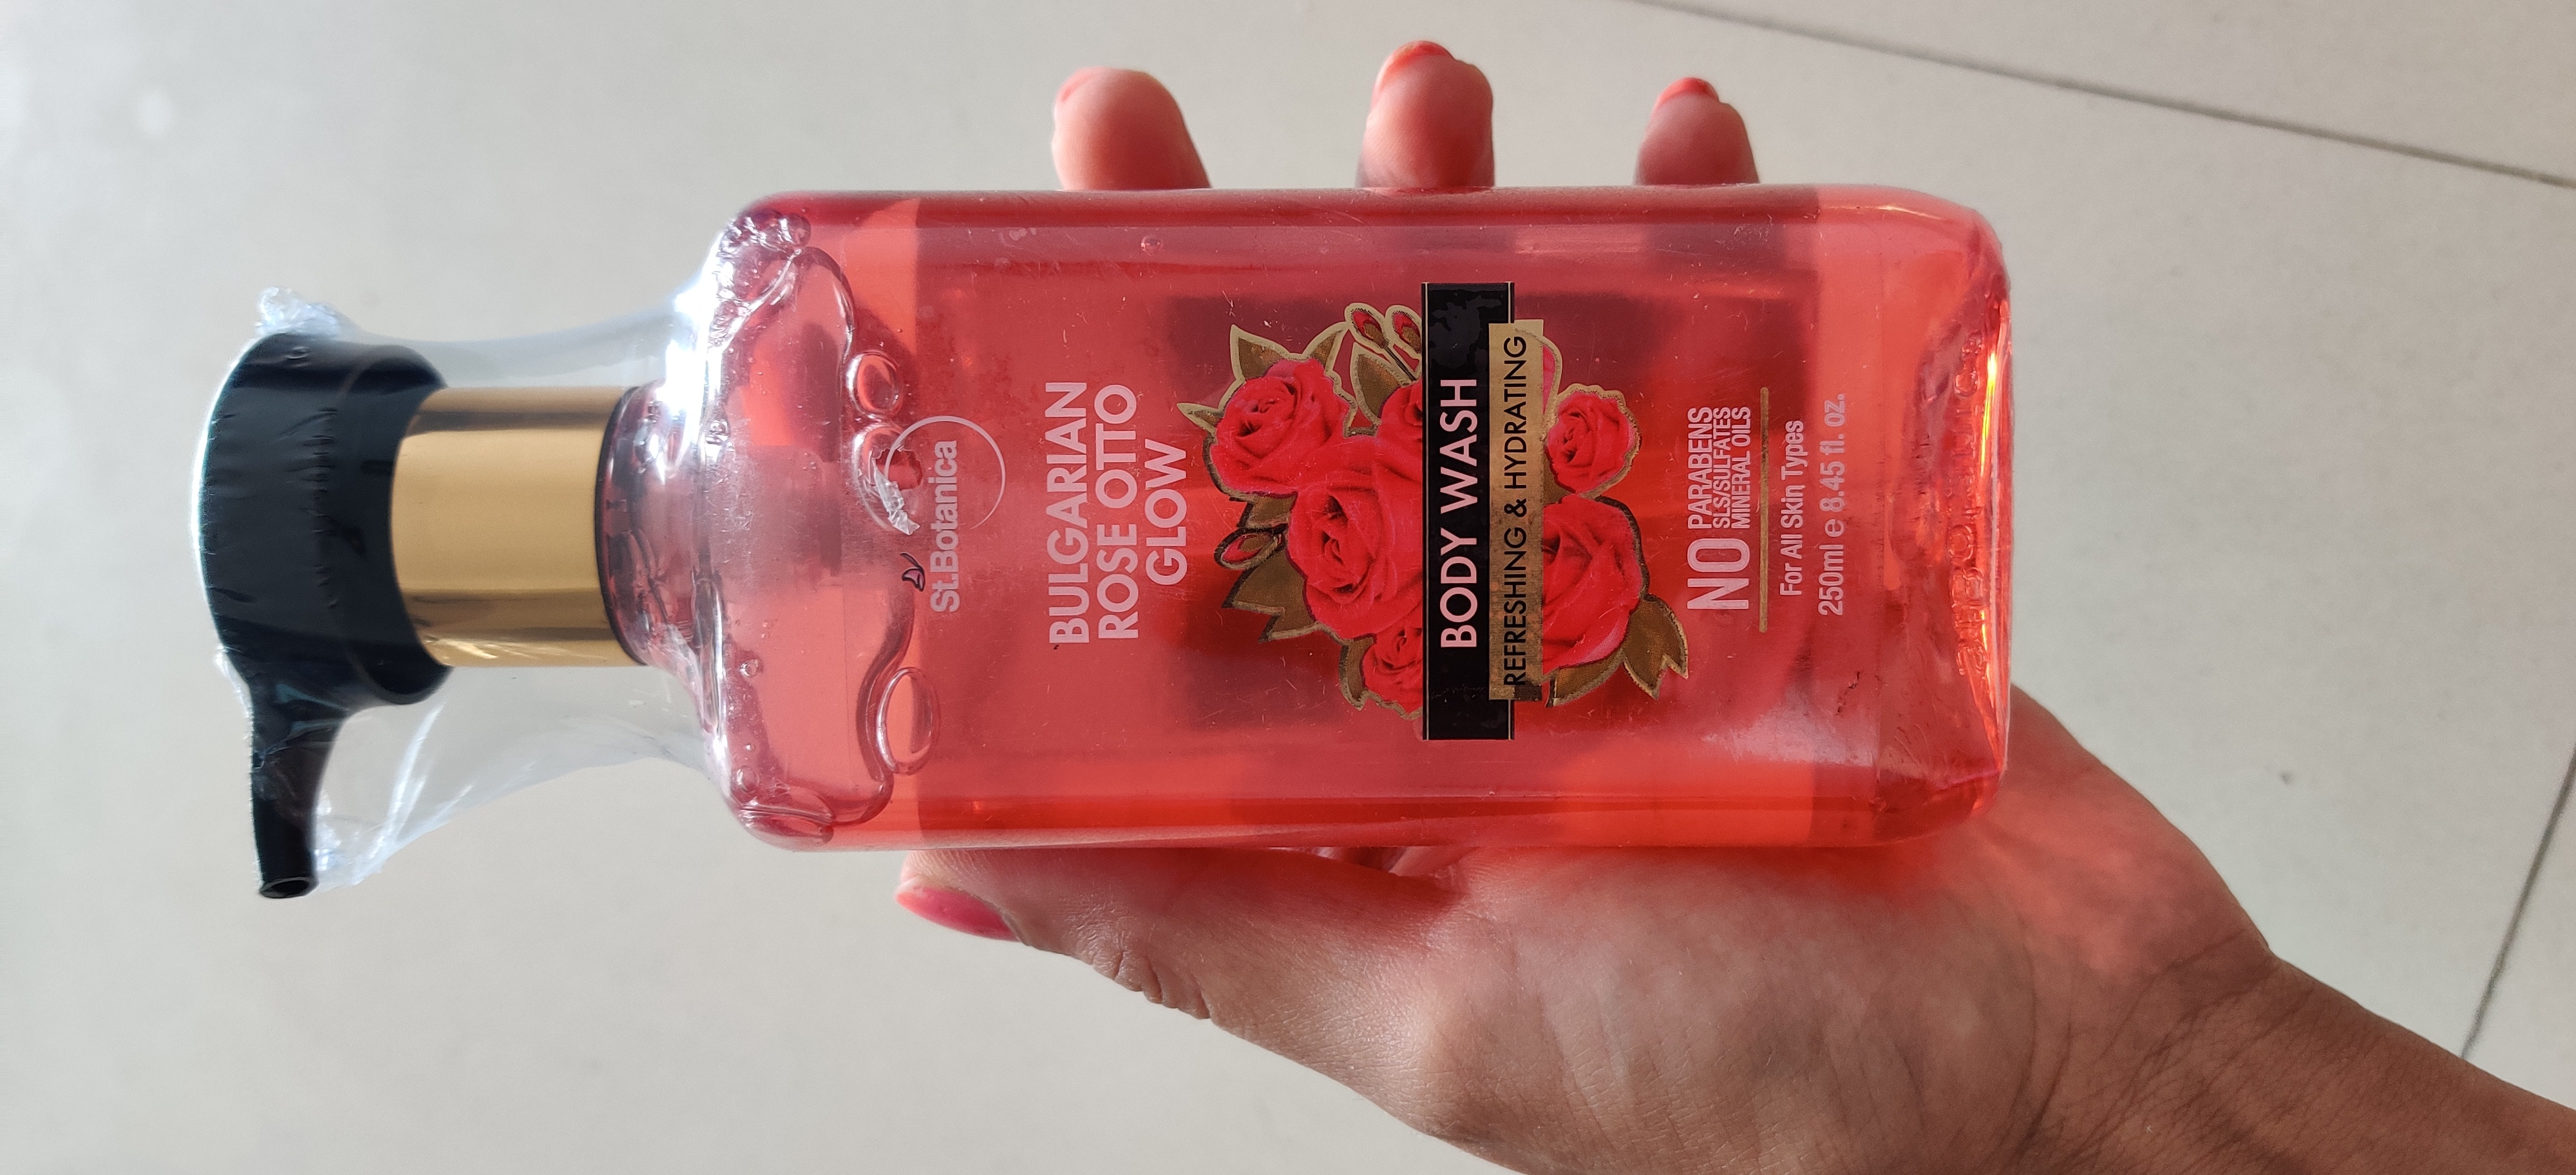 StBotanica Bulgarian Rose Otto Glow Body Wash-Totally awesome-By meghanka_parihar